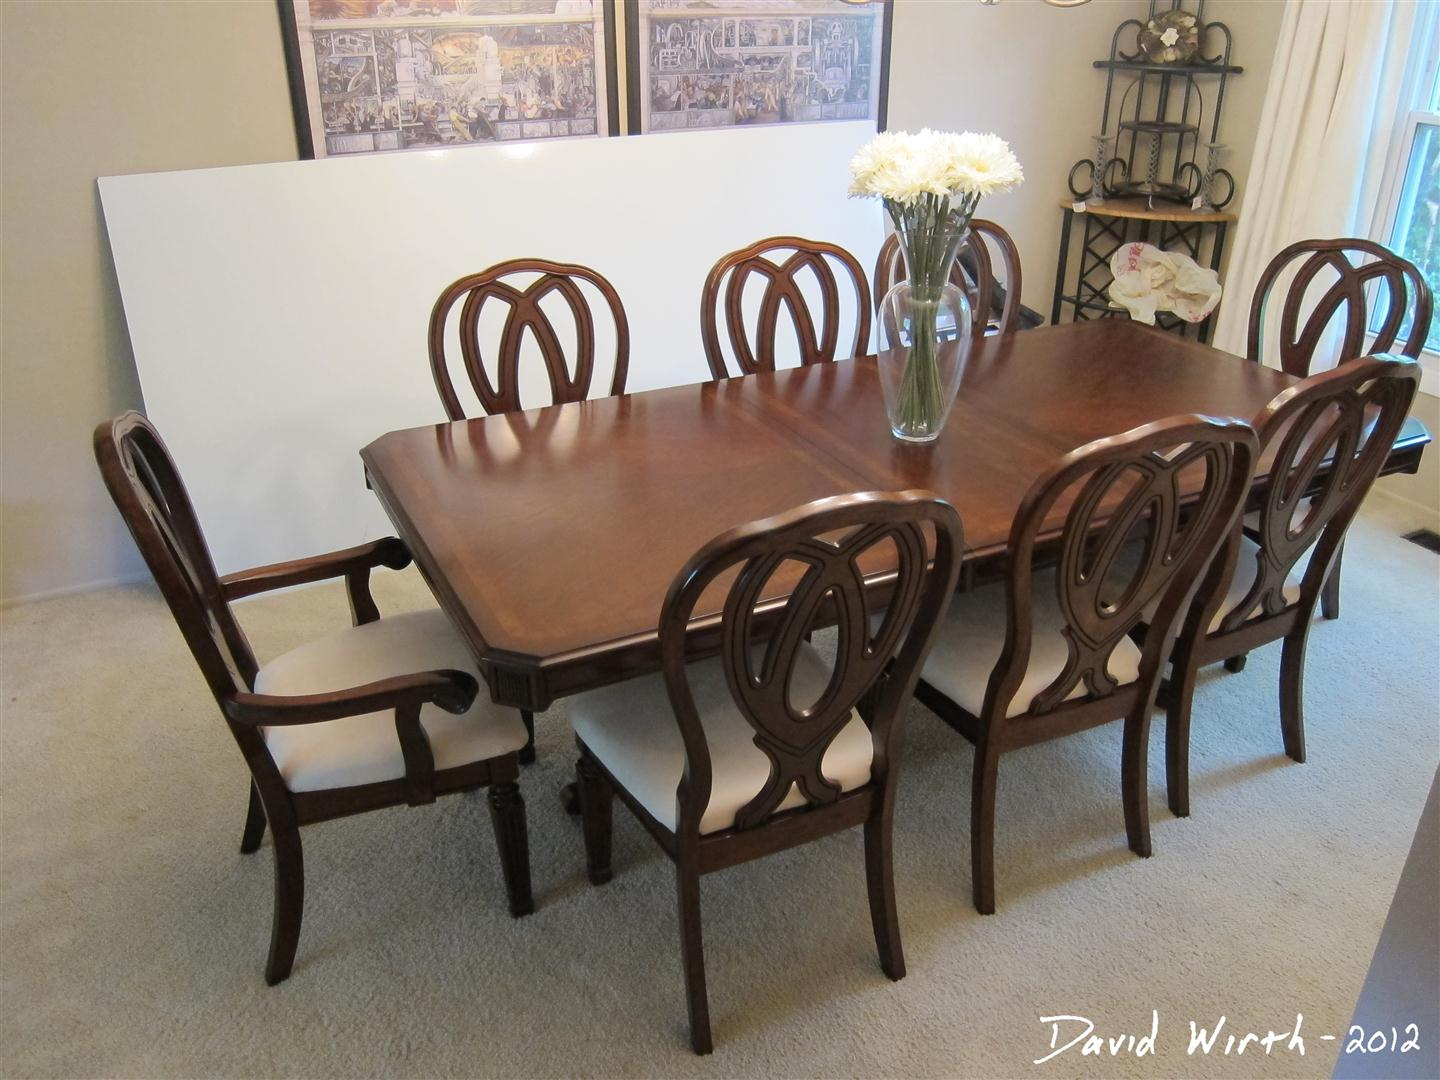 Remarkable Dining Room Table and Chairs 1440 x 1080 · 184 kB · jpeg